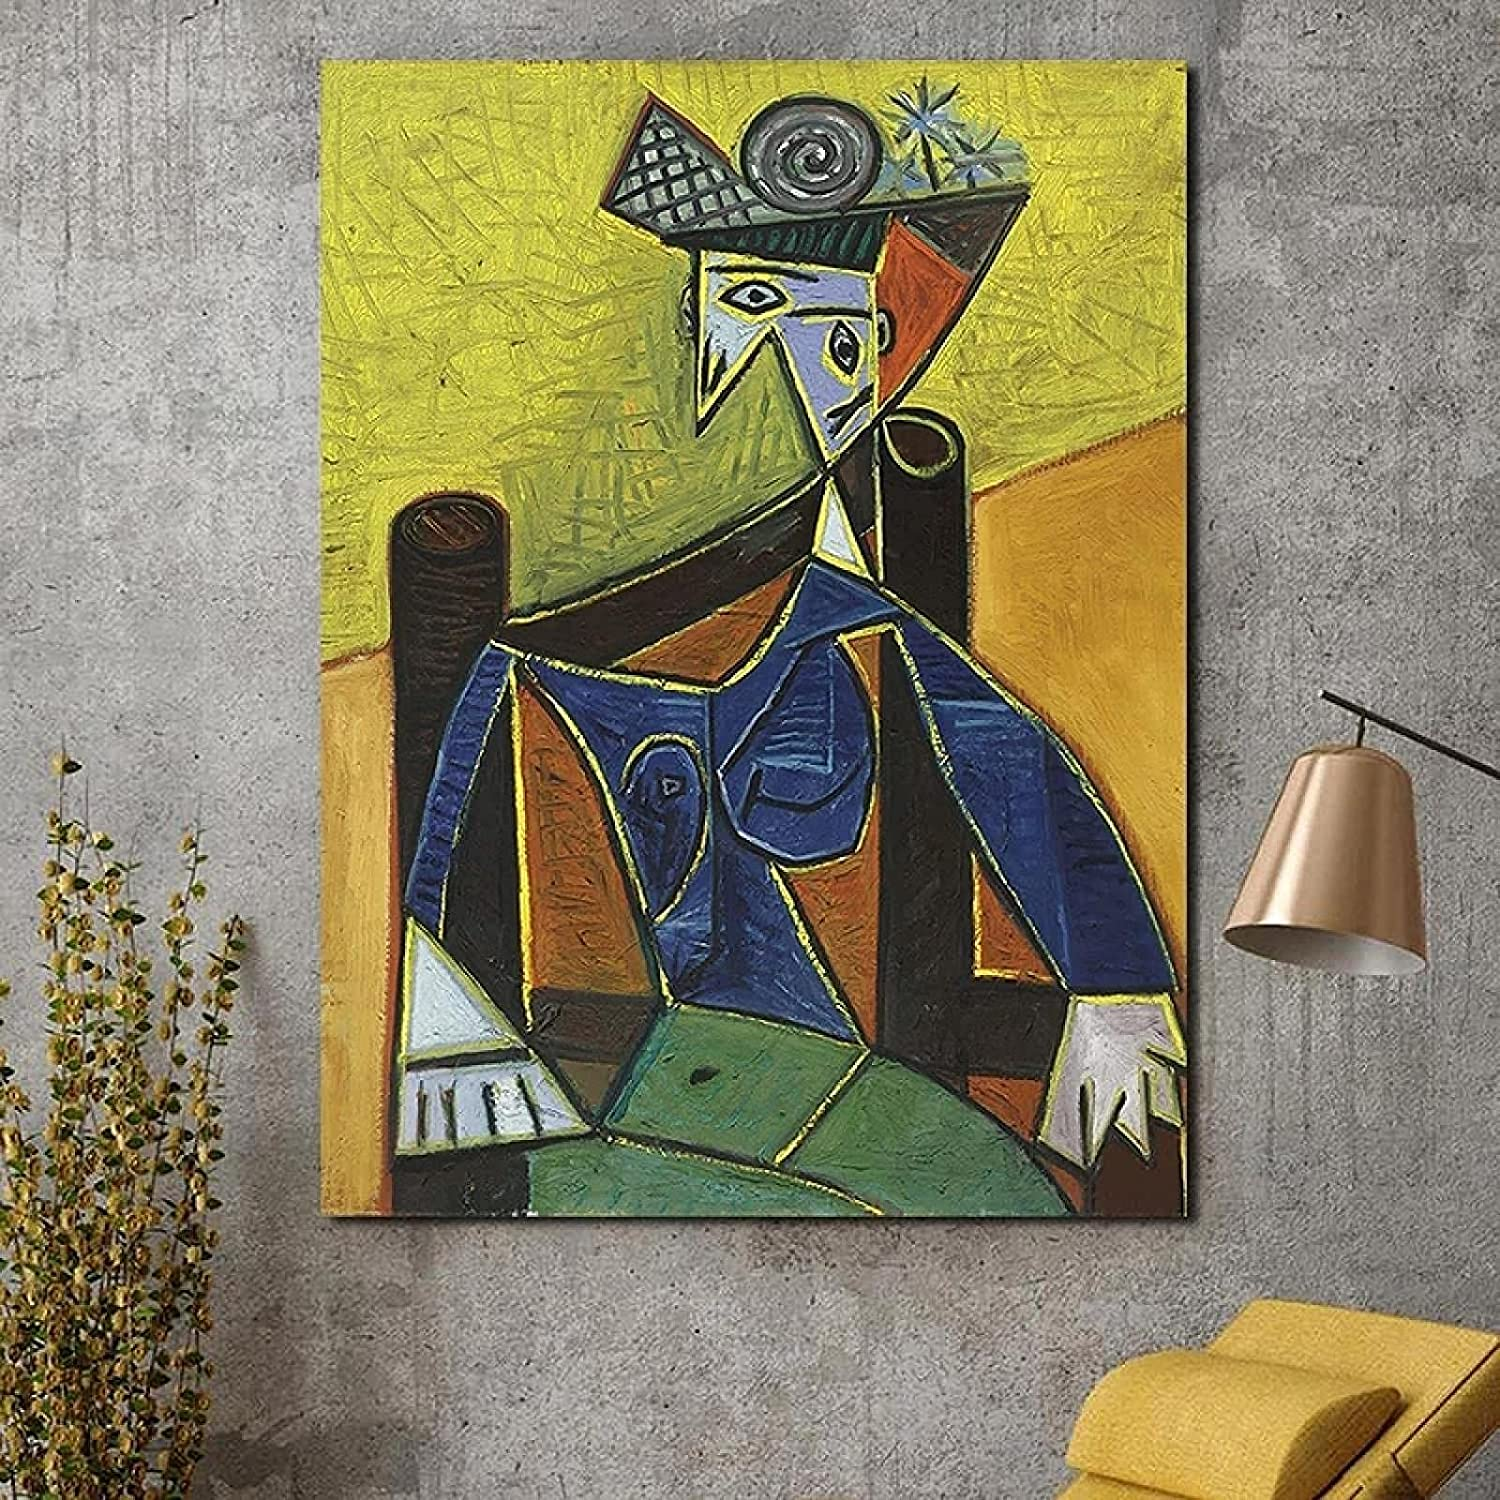 Wall Pictures Picasso Woman Sitting Poster Canvas Armchair in an All items free shipping Max 82% OFF